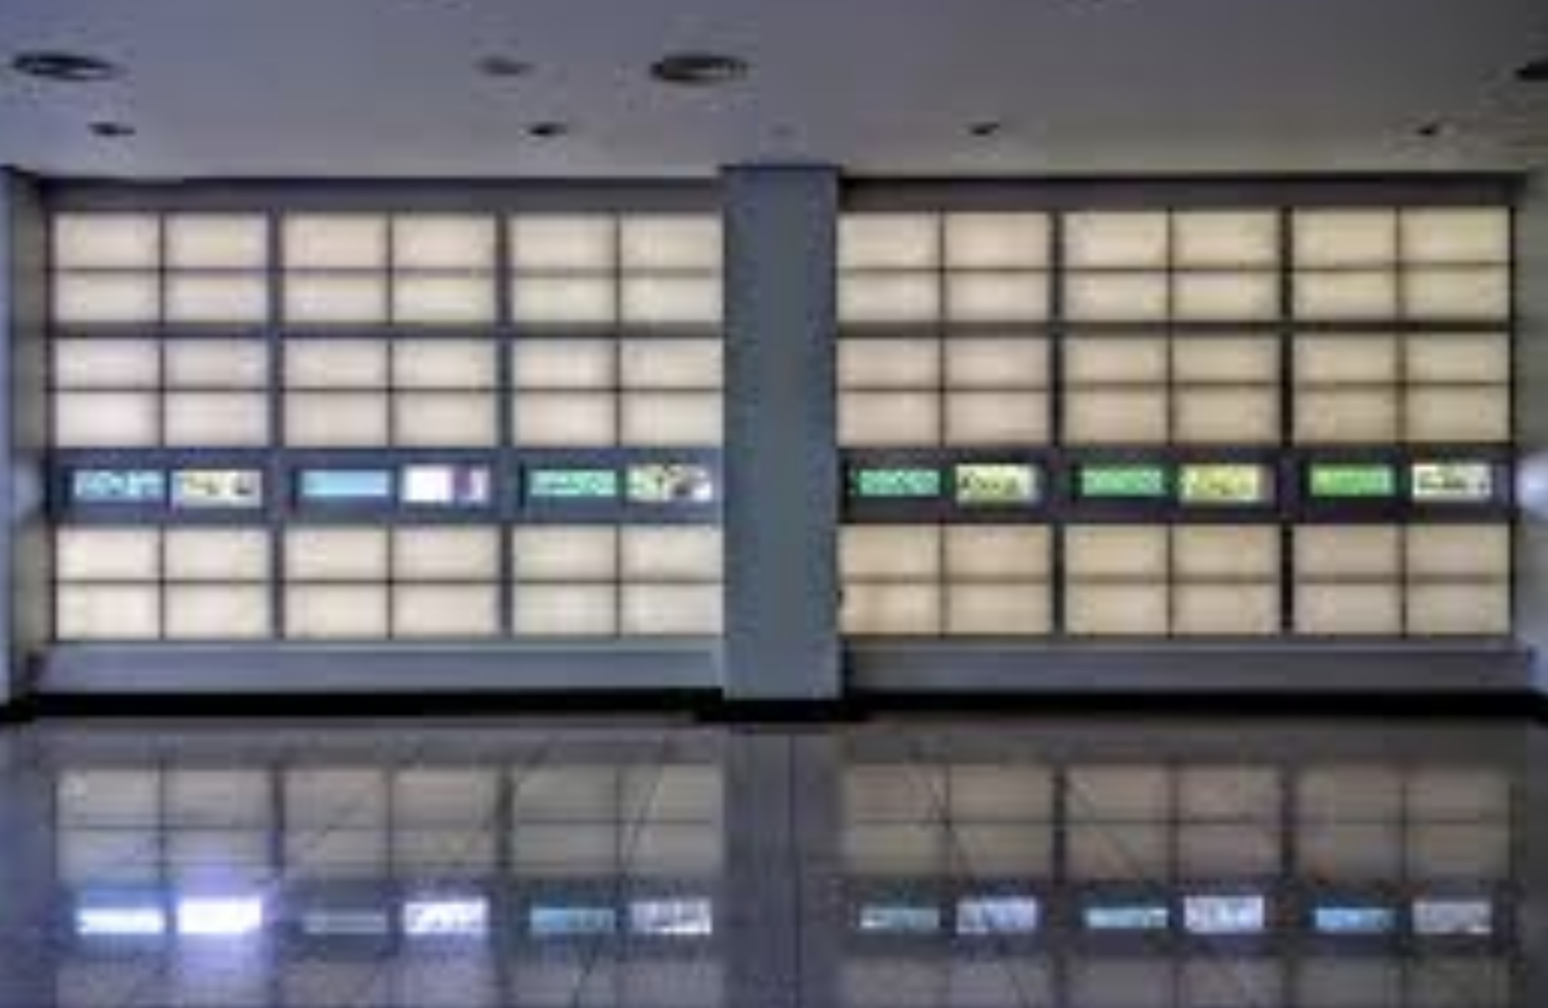 Manhattan Glass Garage Doors | Pros and Cons & Manhattan Glass Garage Doors Archives - Advanced Door